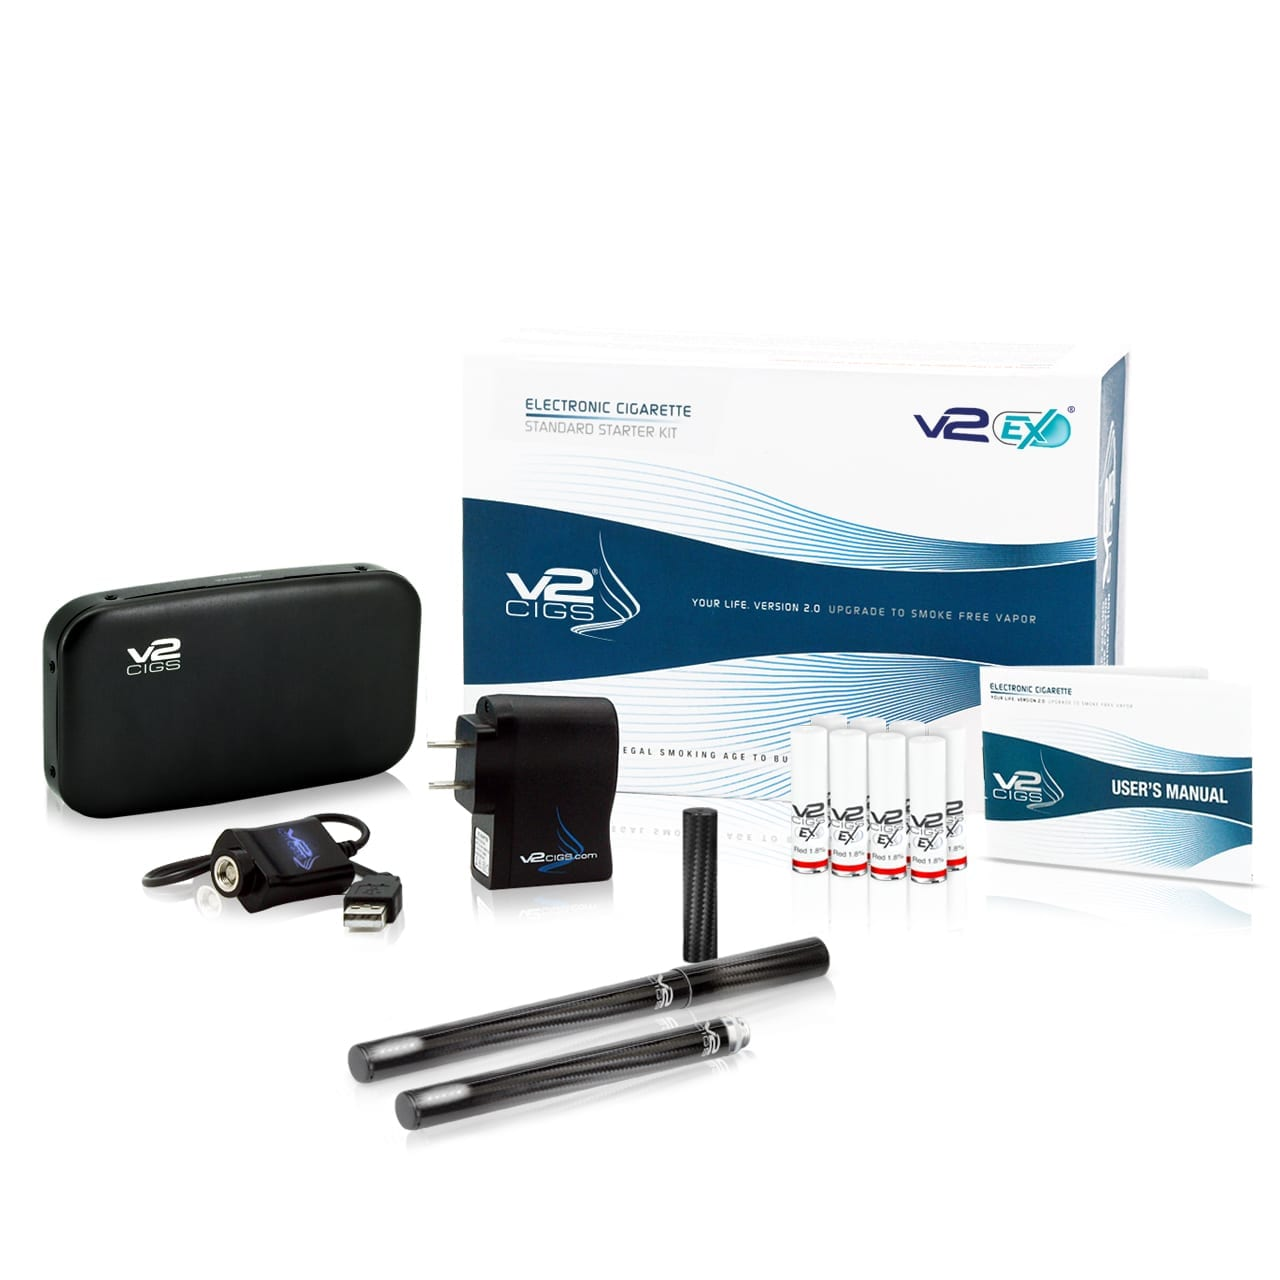 EX Series Carbon Fiber Standard Plus Starter Kit from V2 Cigs